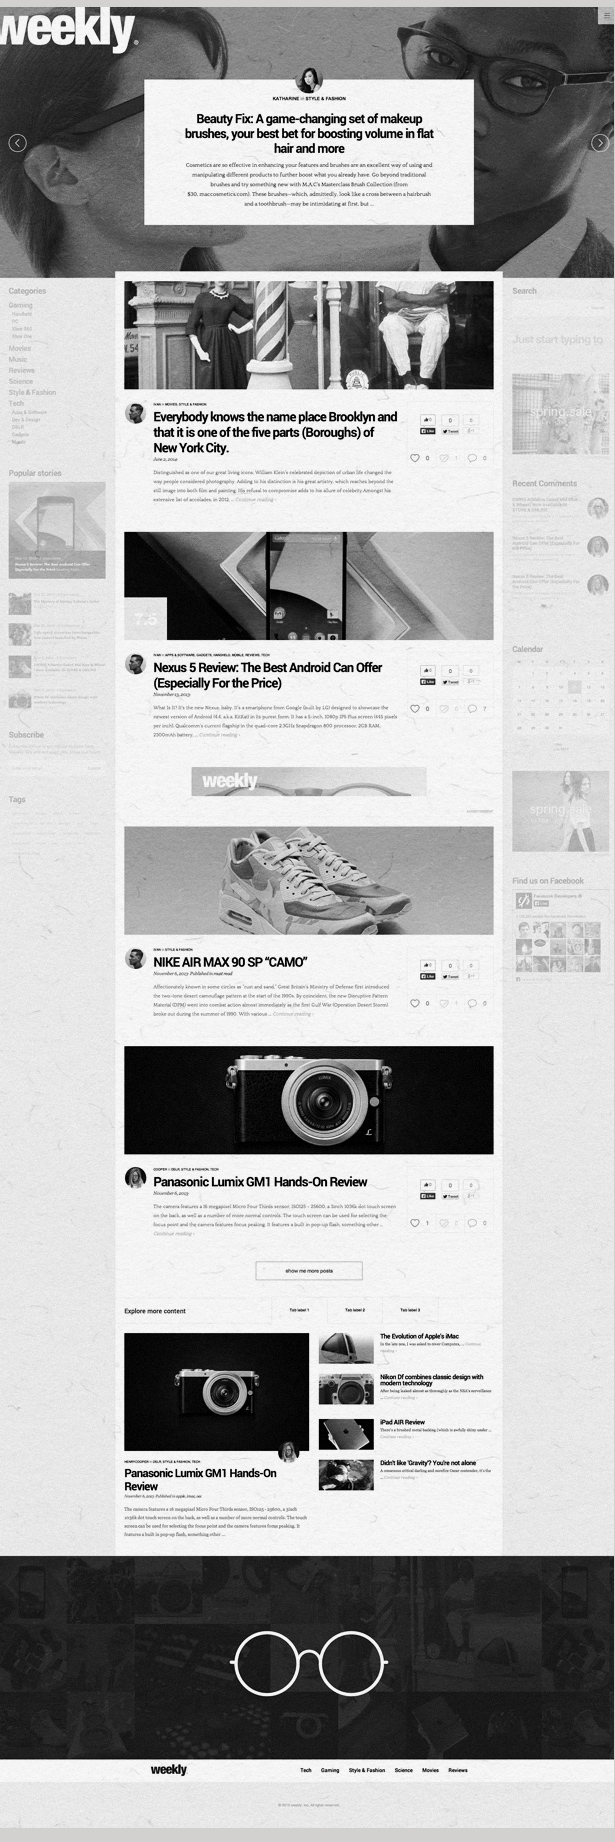 Weekly is a responsive, modern, flexible and clean WordPress theme suitable for magazines, newsp ...